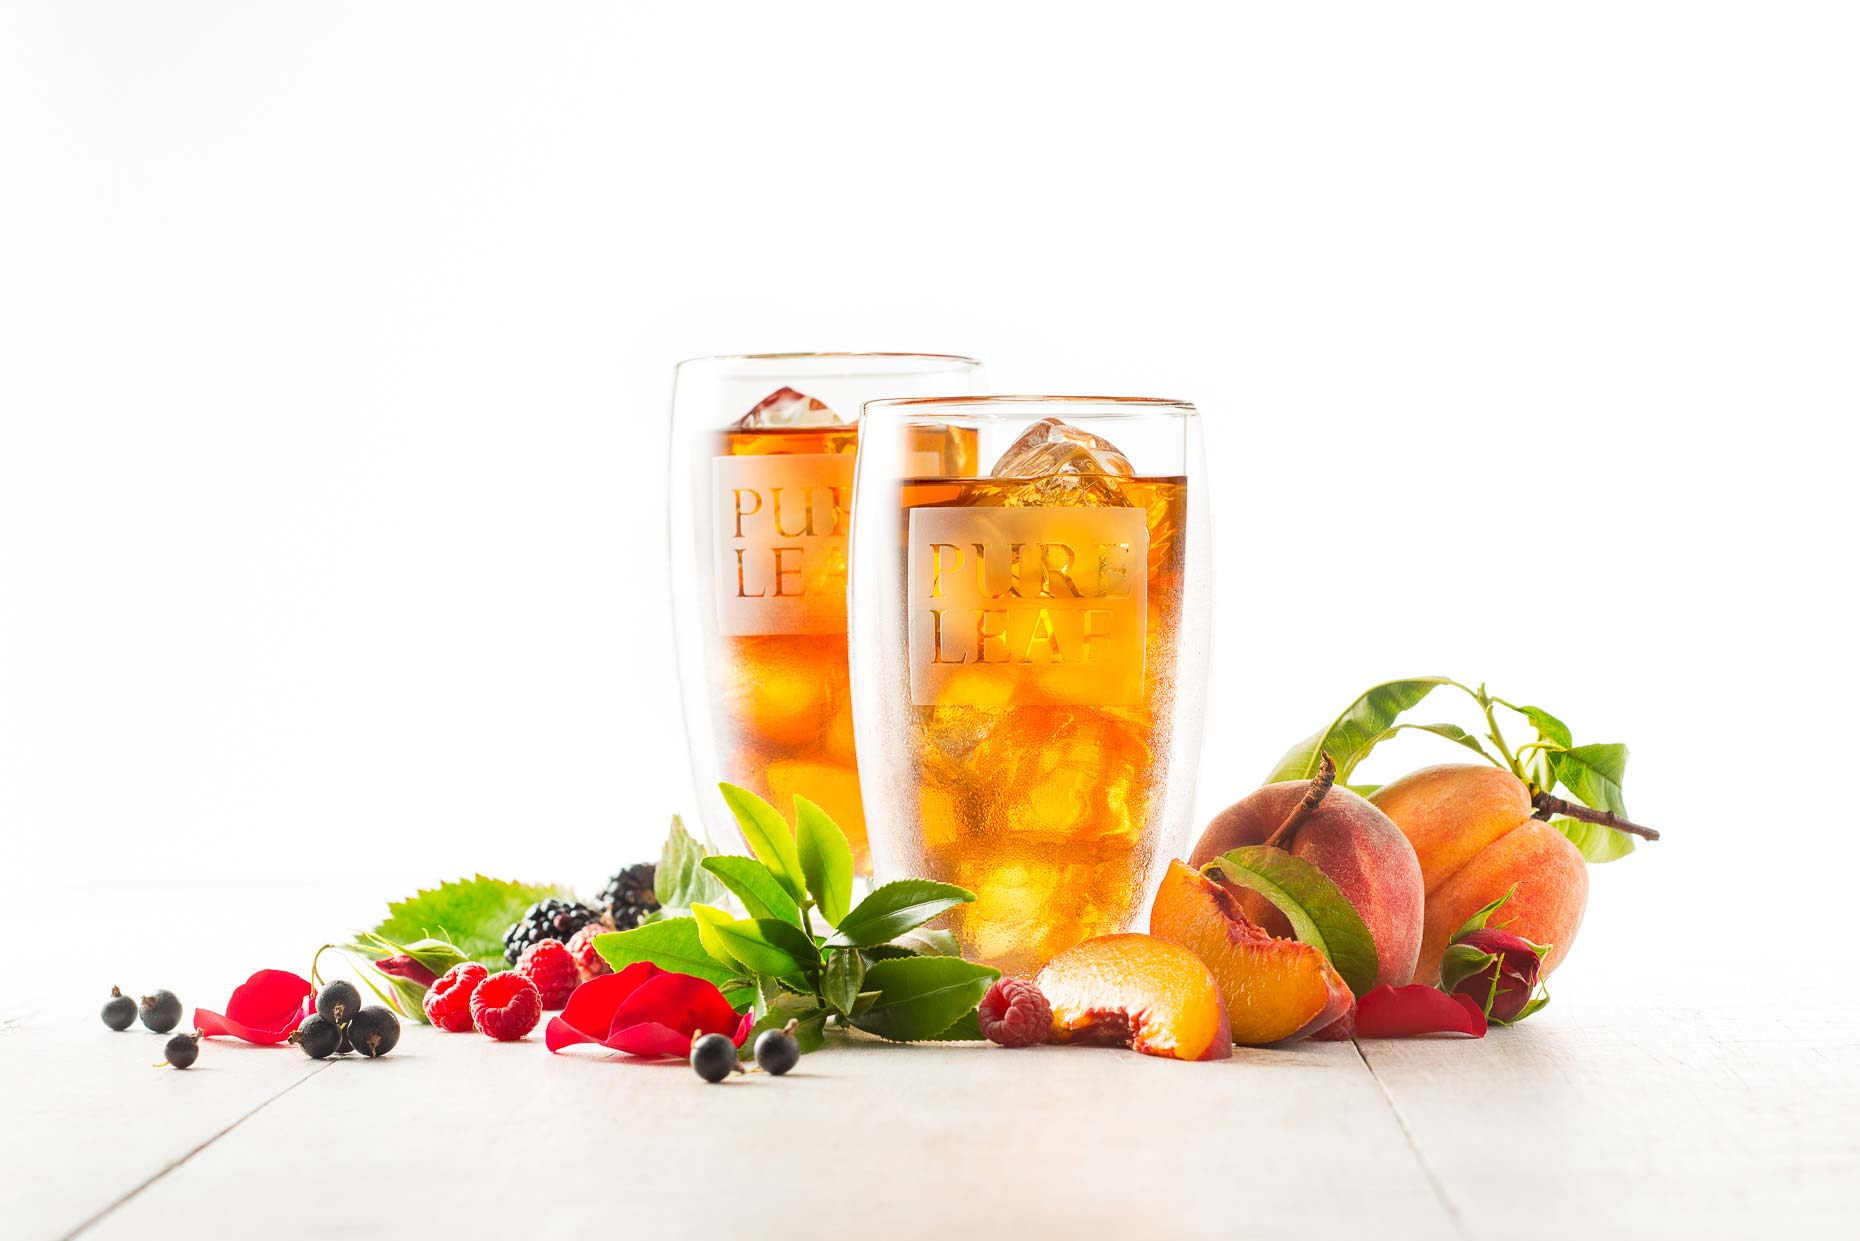 Peach & Raspberry Pure Leaf Tea with Fruit